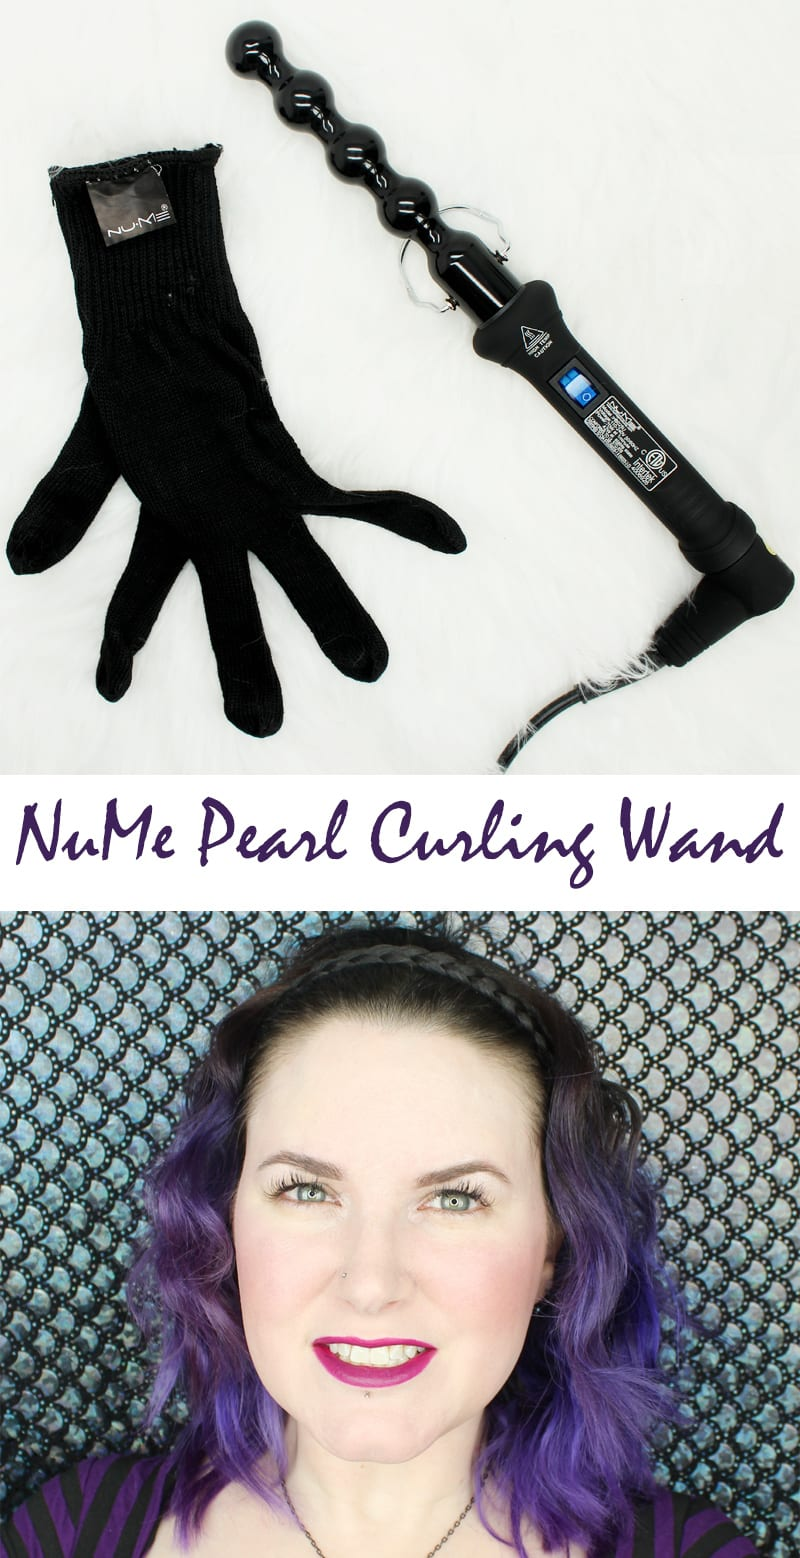 NuMe Pearl Curling Wand Review